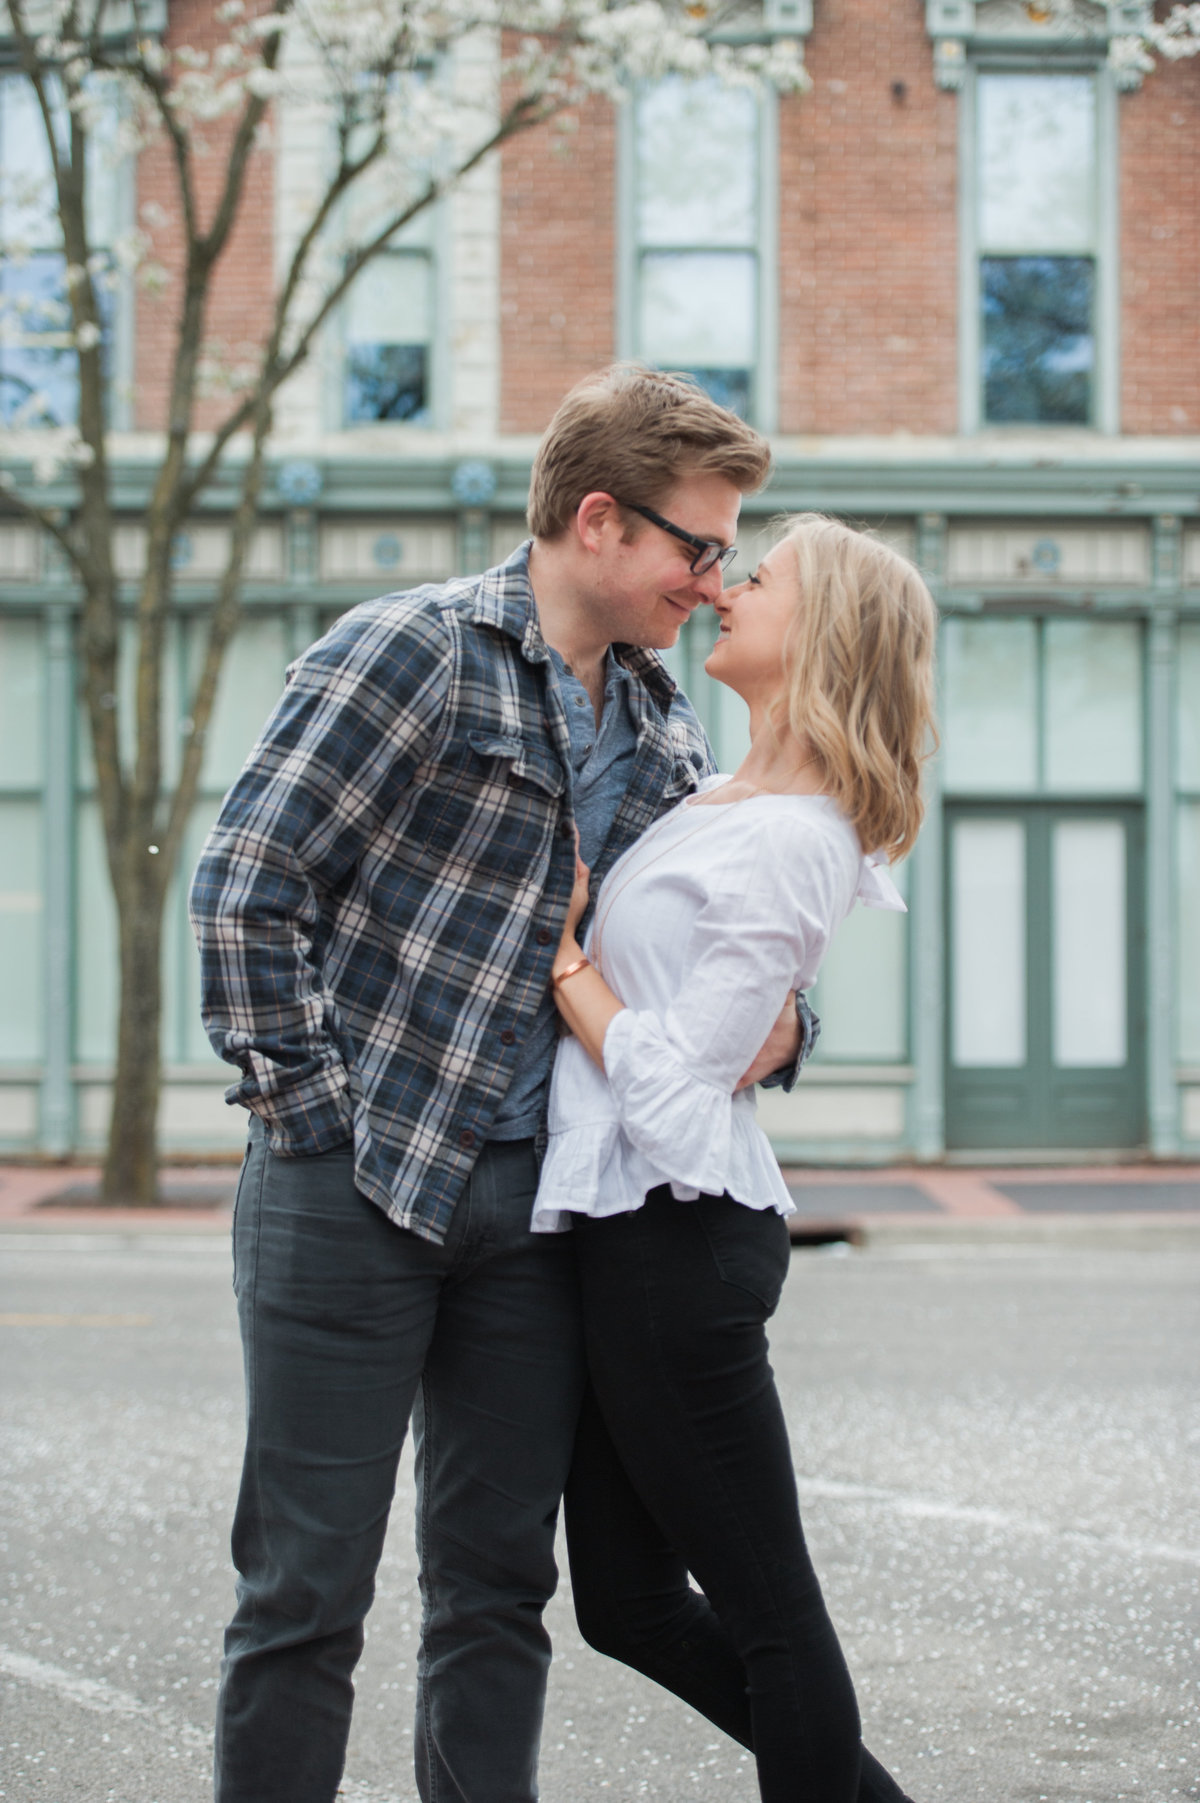 Engagement Photos in Central Indiana by Rachael Foster Photography (17 of 53)